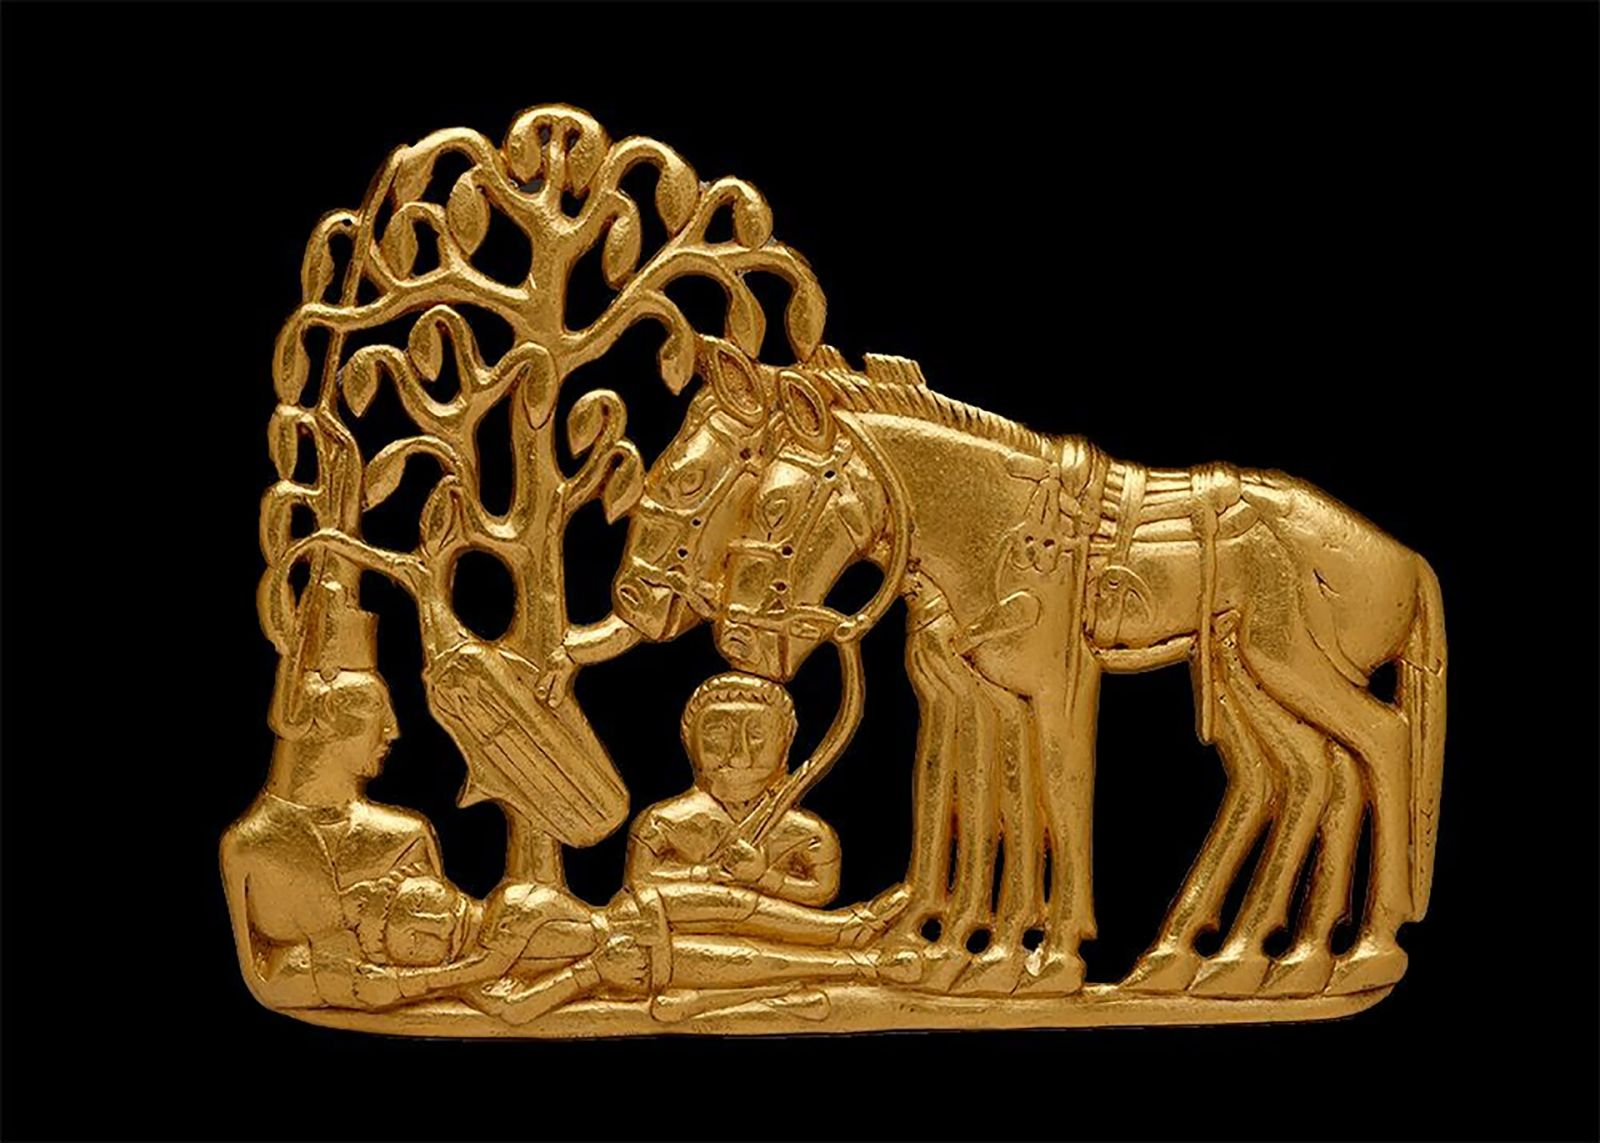 Fig. 2. A gold belt plaque of a Scythian funerary scene, fourth–third century B.C.E. Siberian Collection of Peter the Great (V. Terebenin; © The State Hermitage Museum, St. Petersburg, 2017).